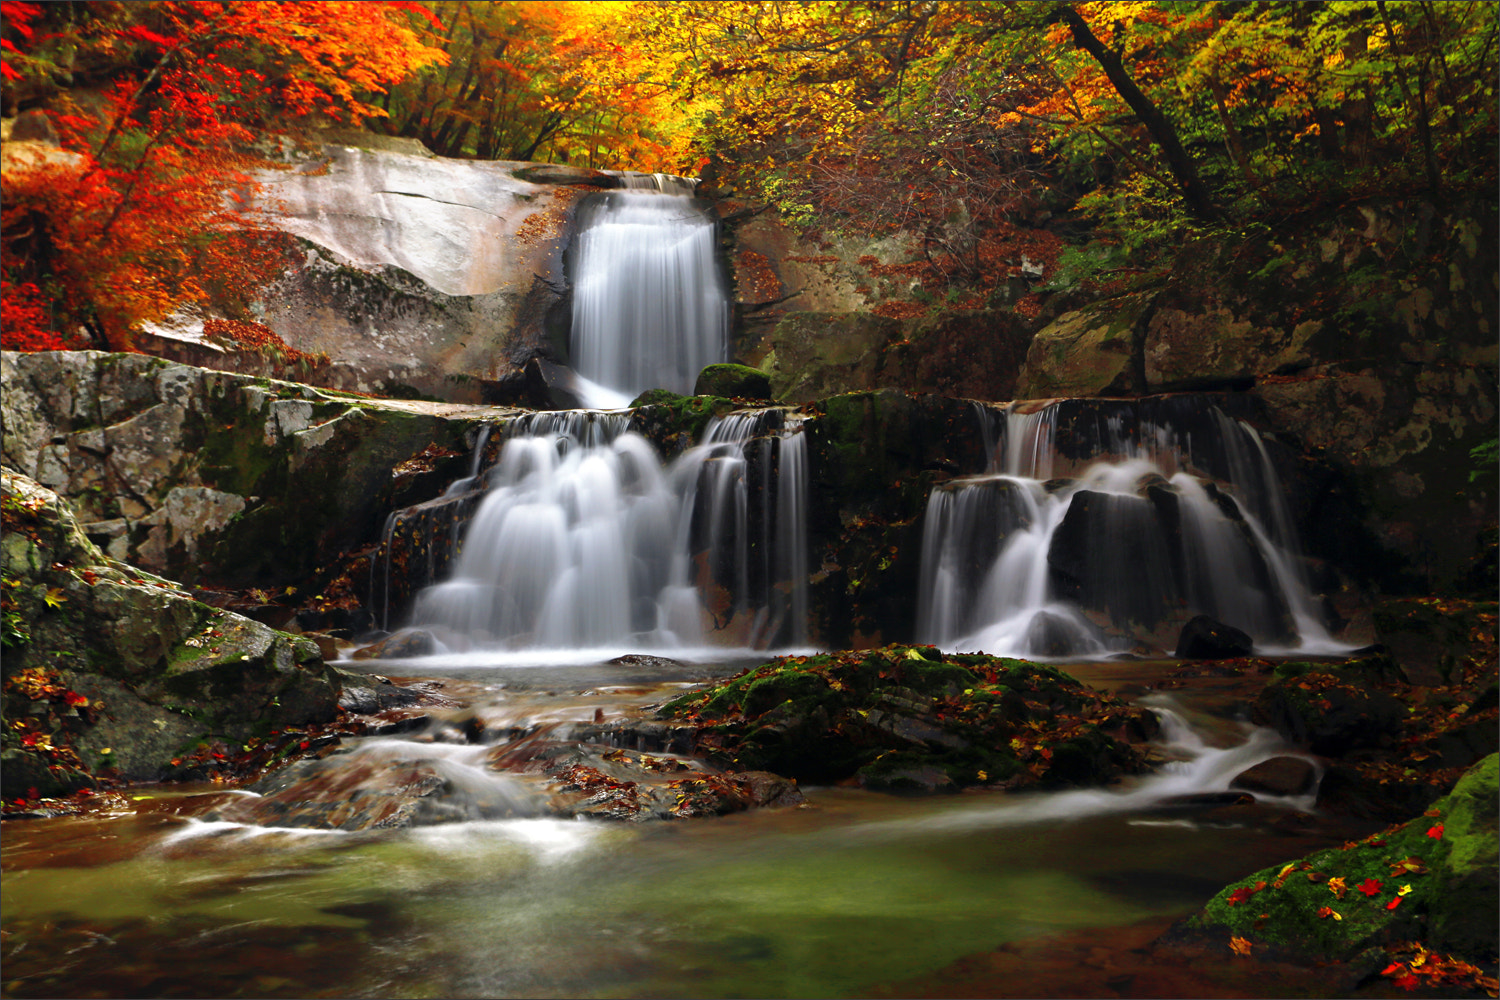 Photograph Two layers of cascade Bangtae Mt. in Korea by Woosra Kim on 500px